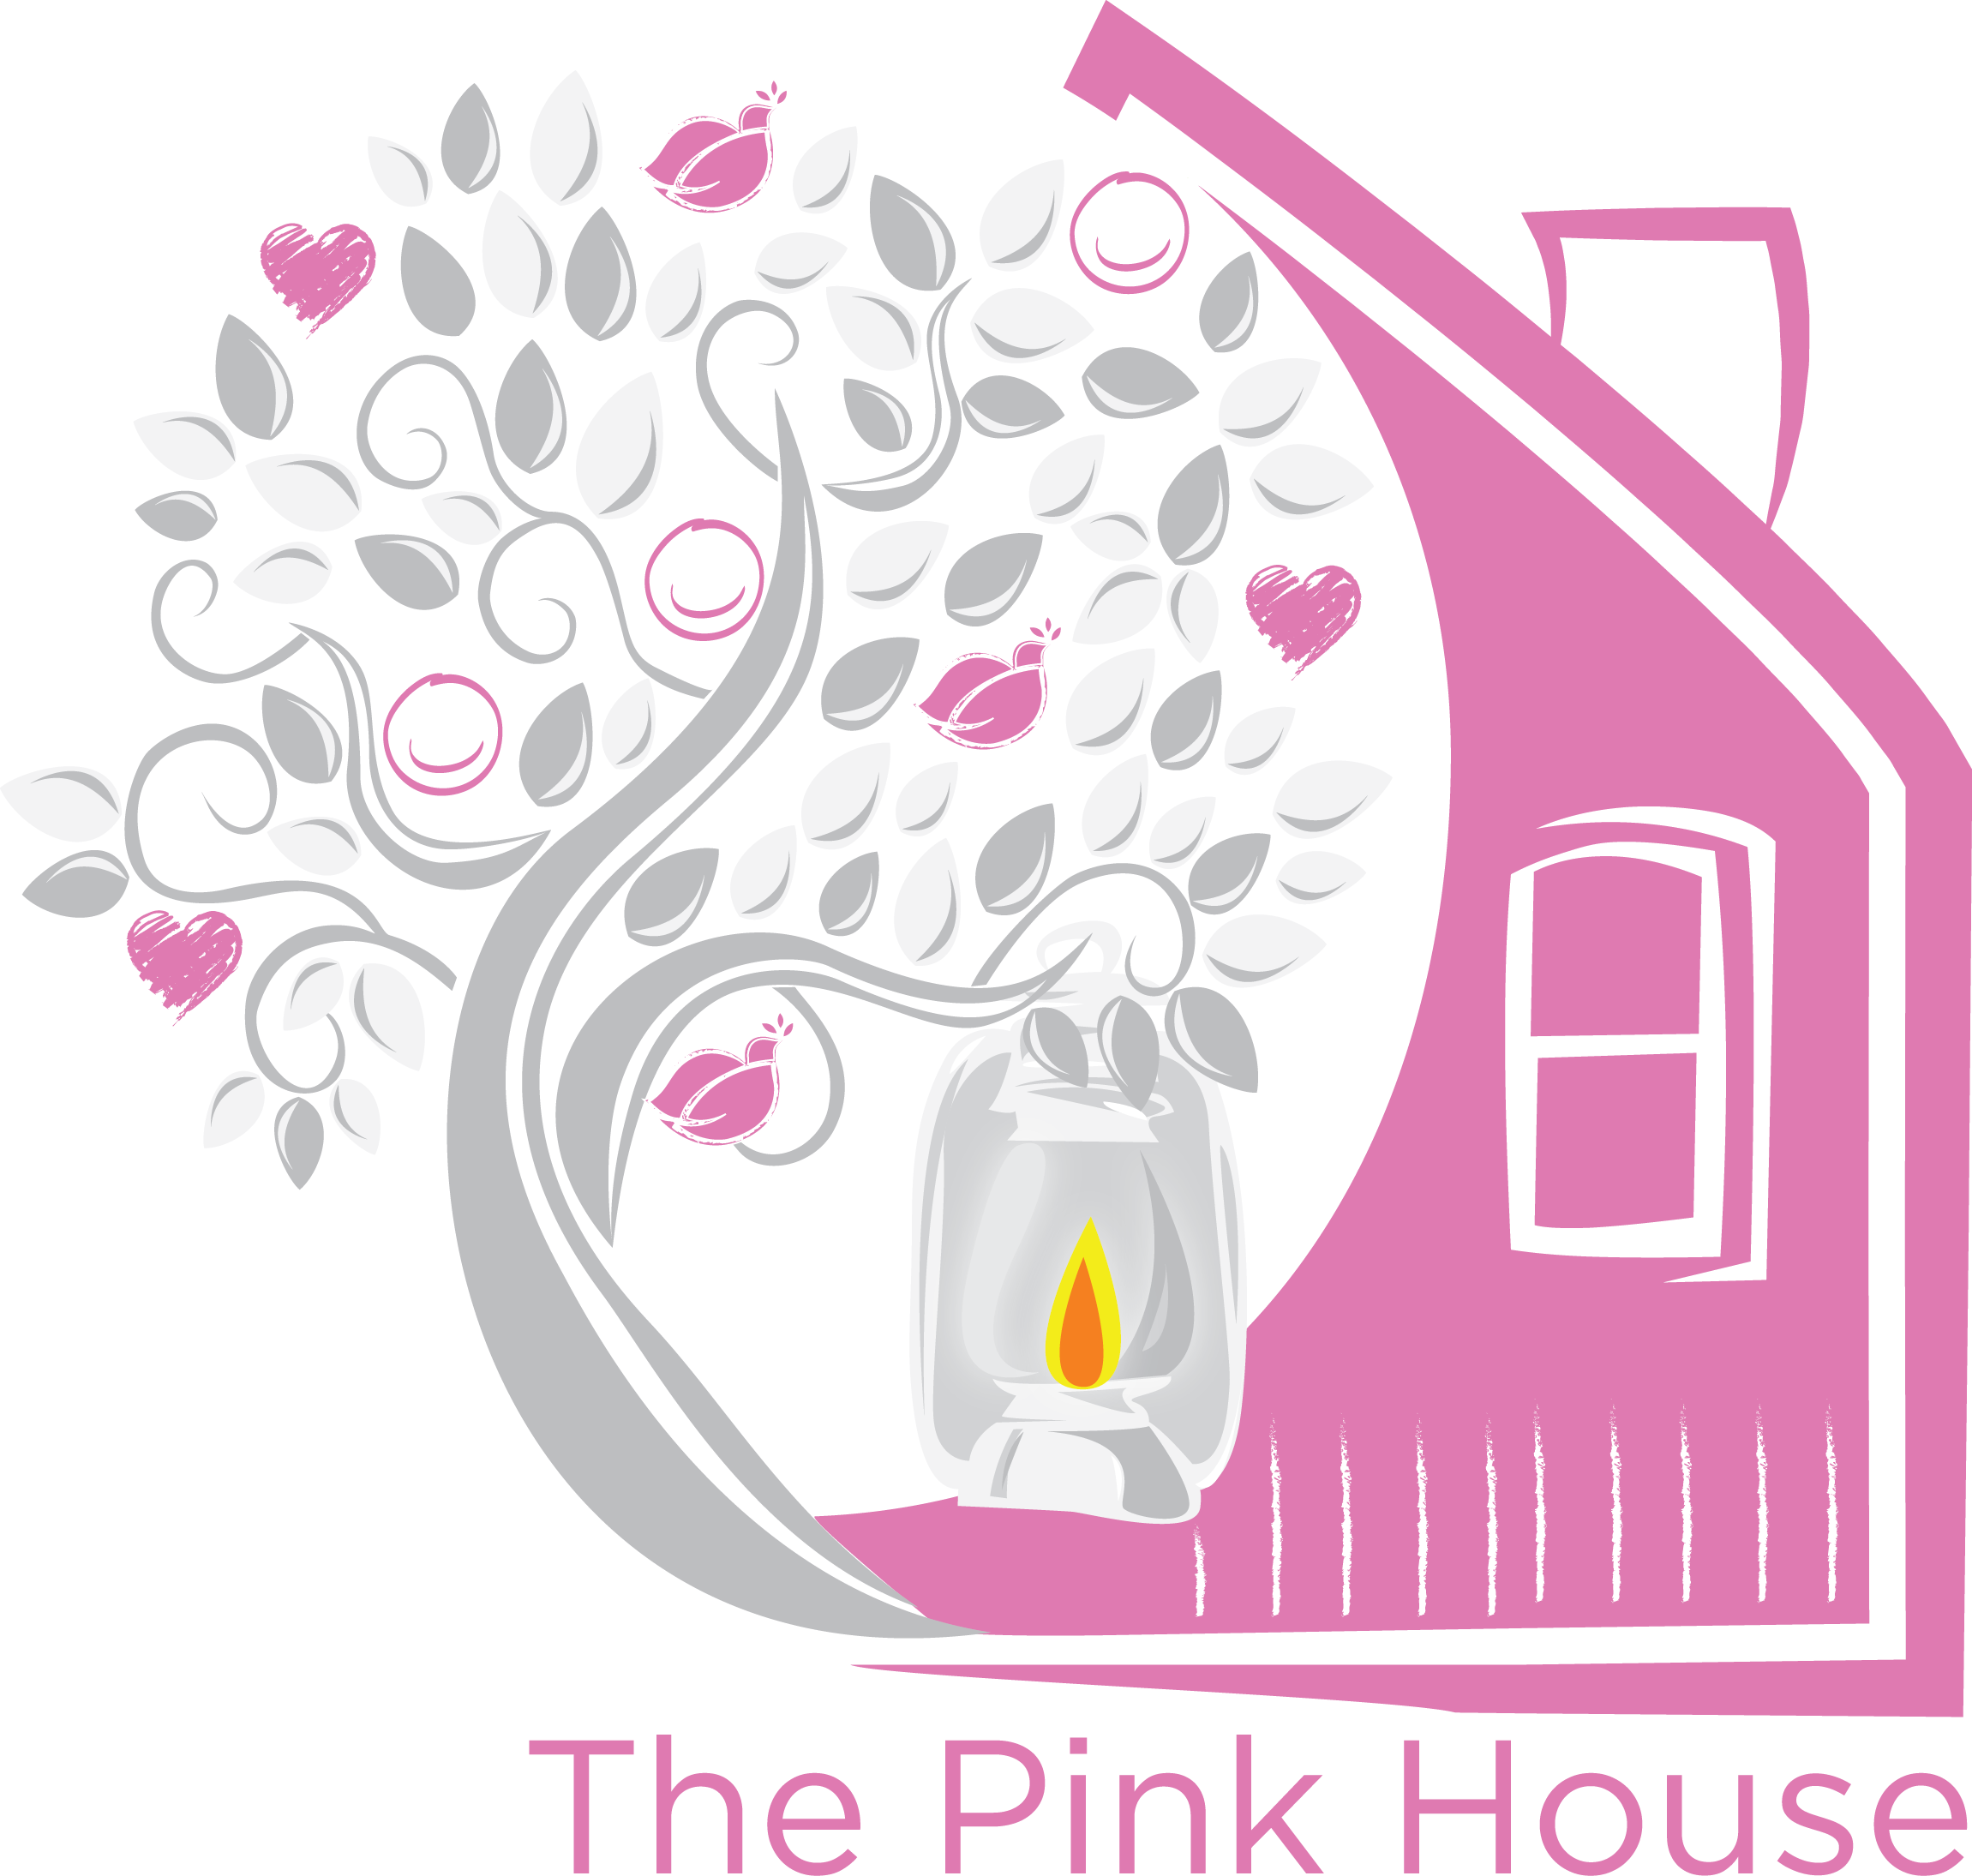 the pink house _Design_10843118